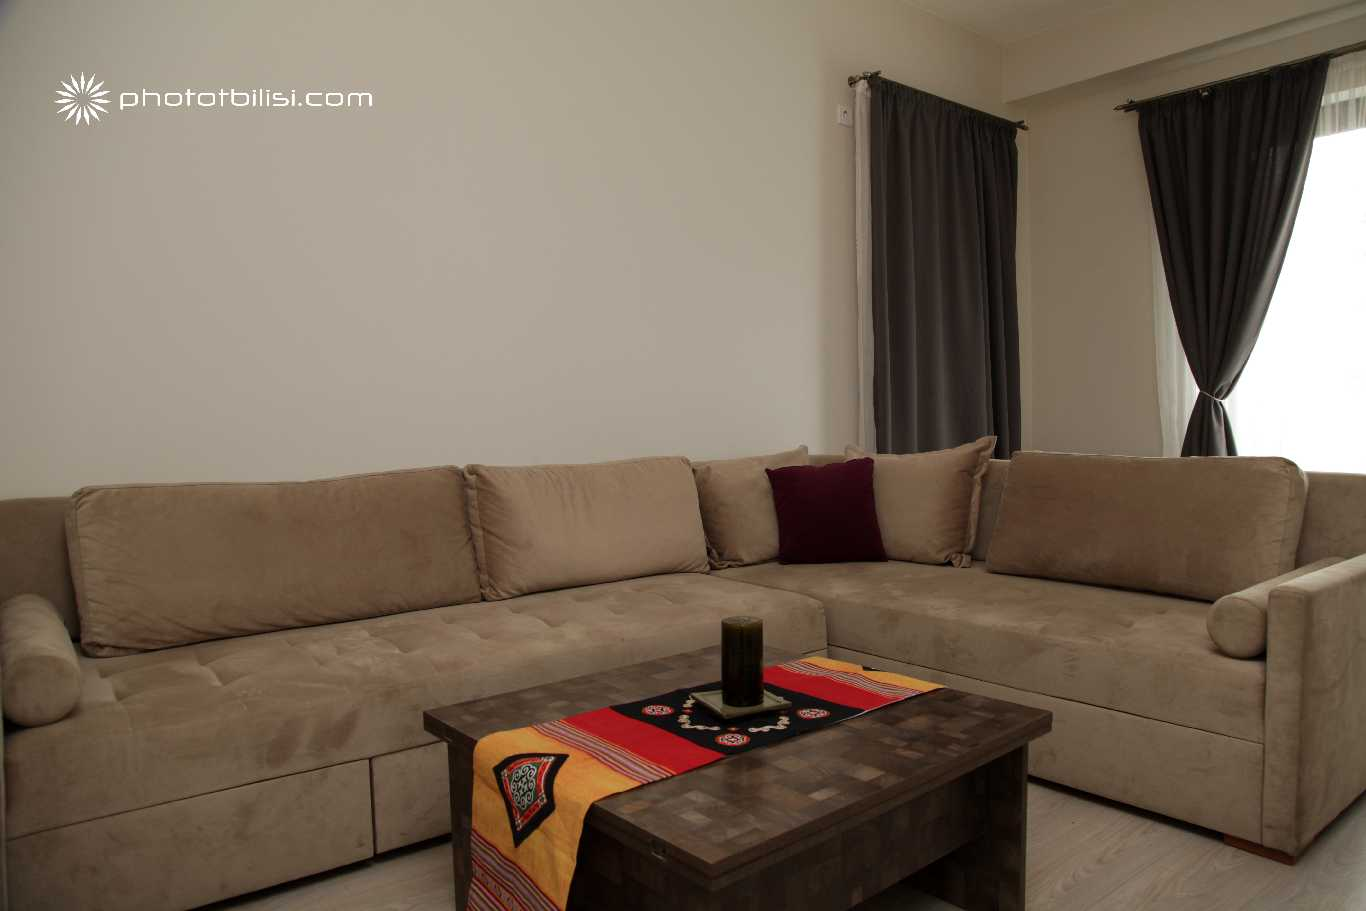 Rent-appartment-in-Tbilisi-IMG_0865